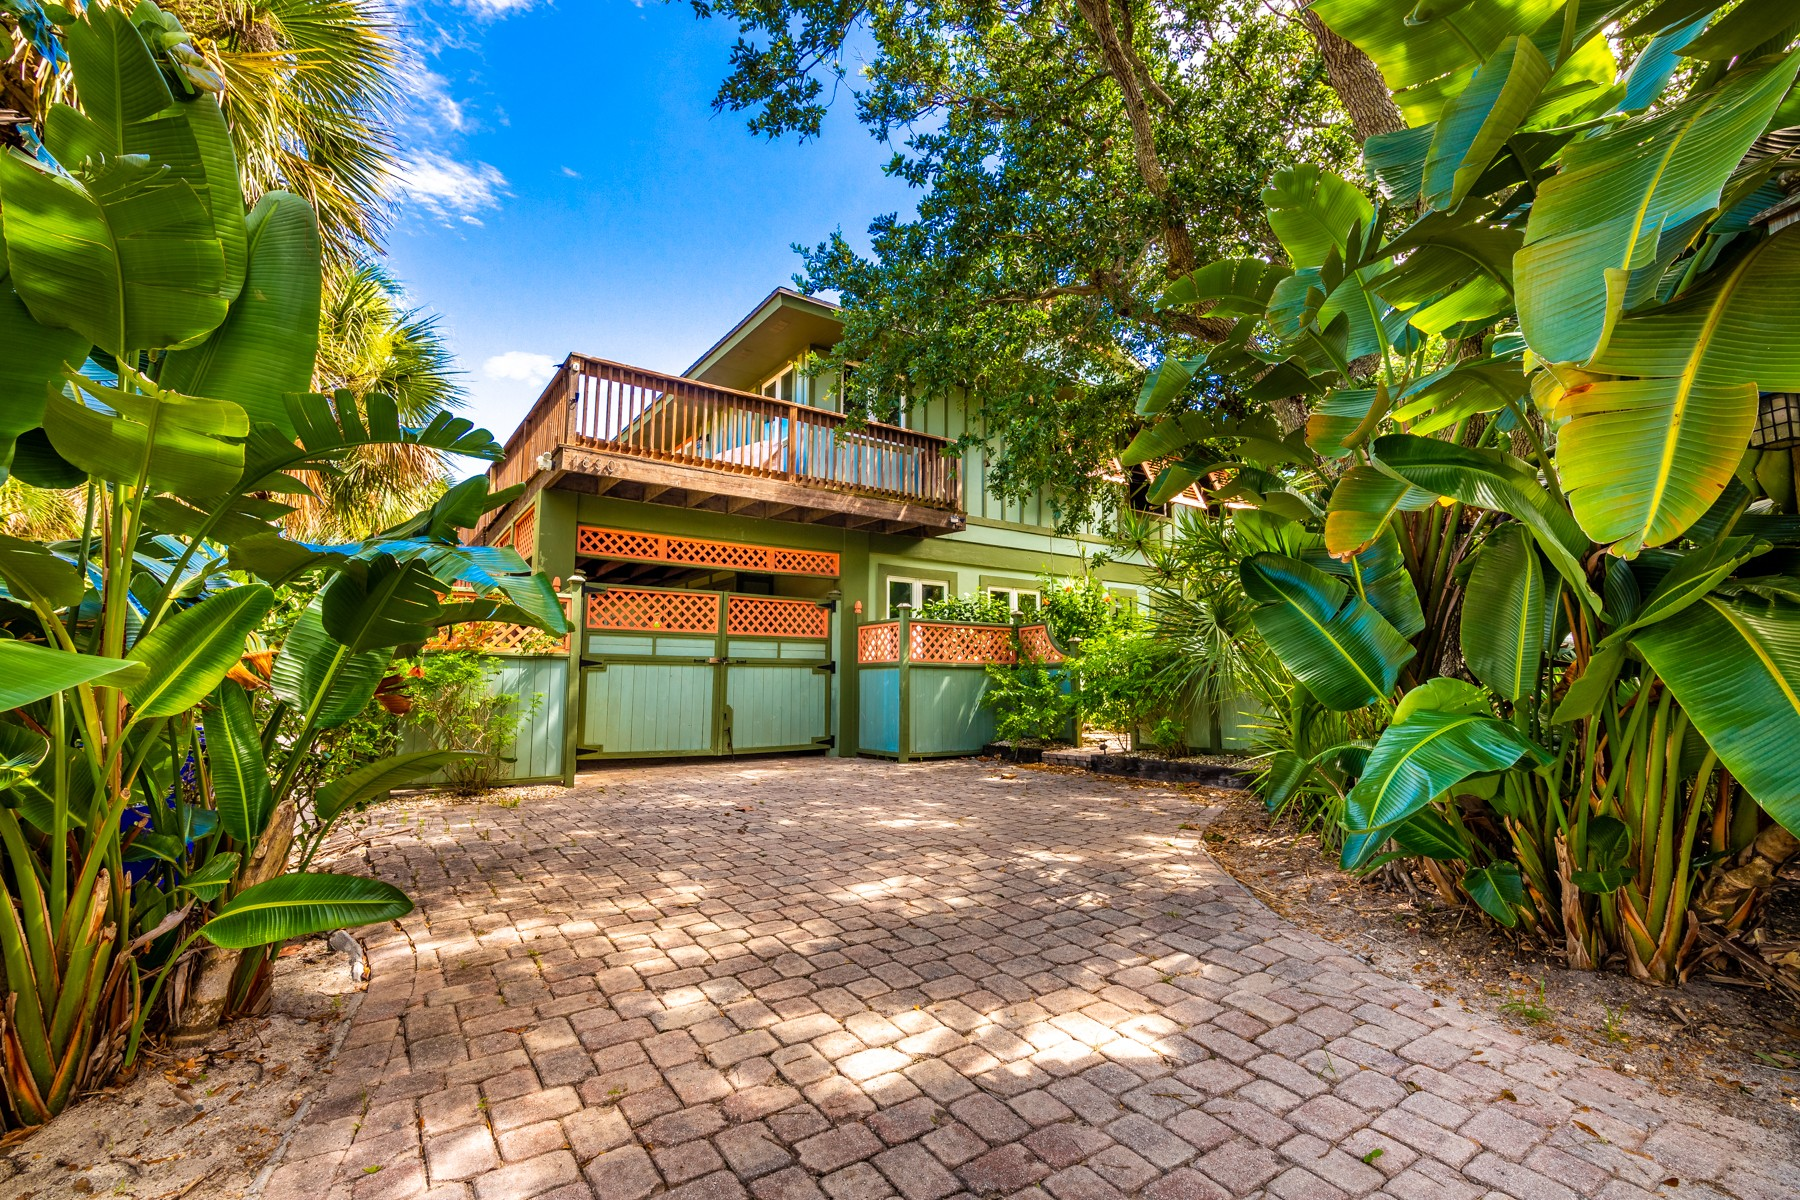 Single Family Homes for Sale at Tropical Home in Tranquil and Quiet Setting 1830 E Cayman Road Vero Beach, Florida 32963 United States